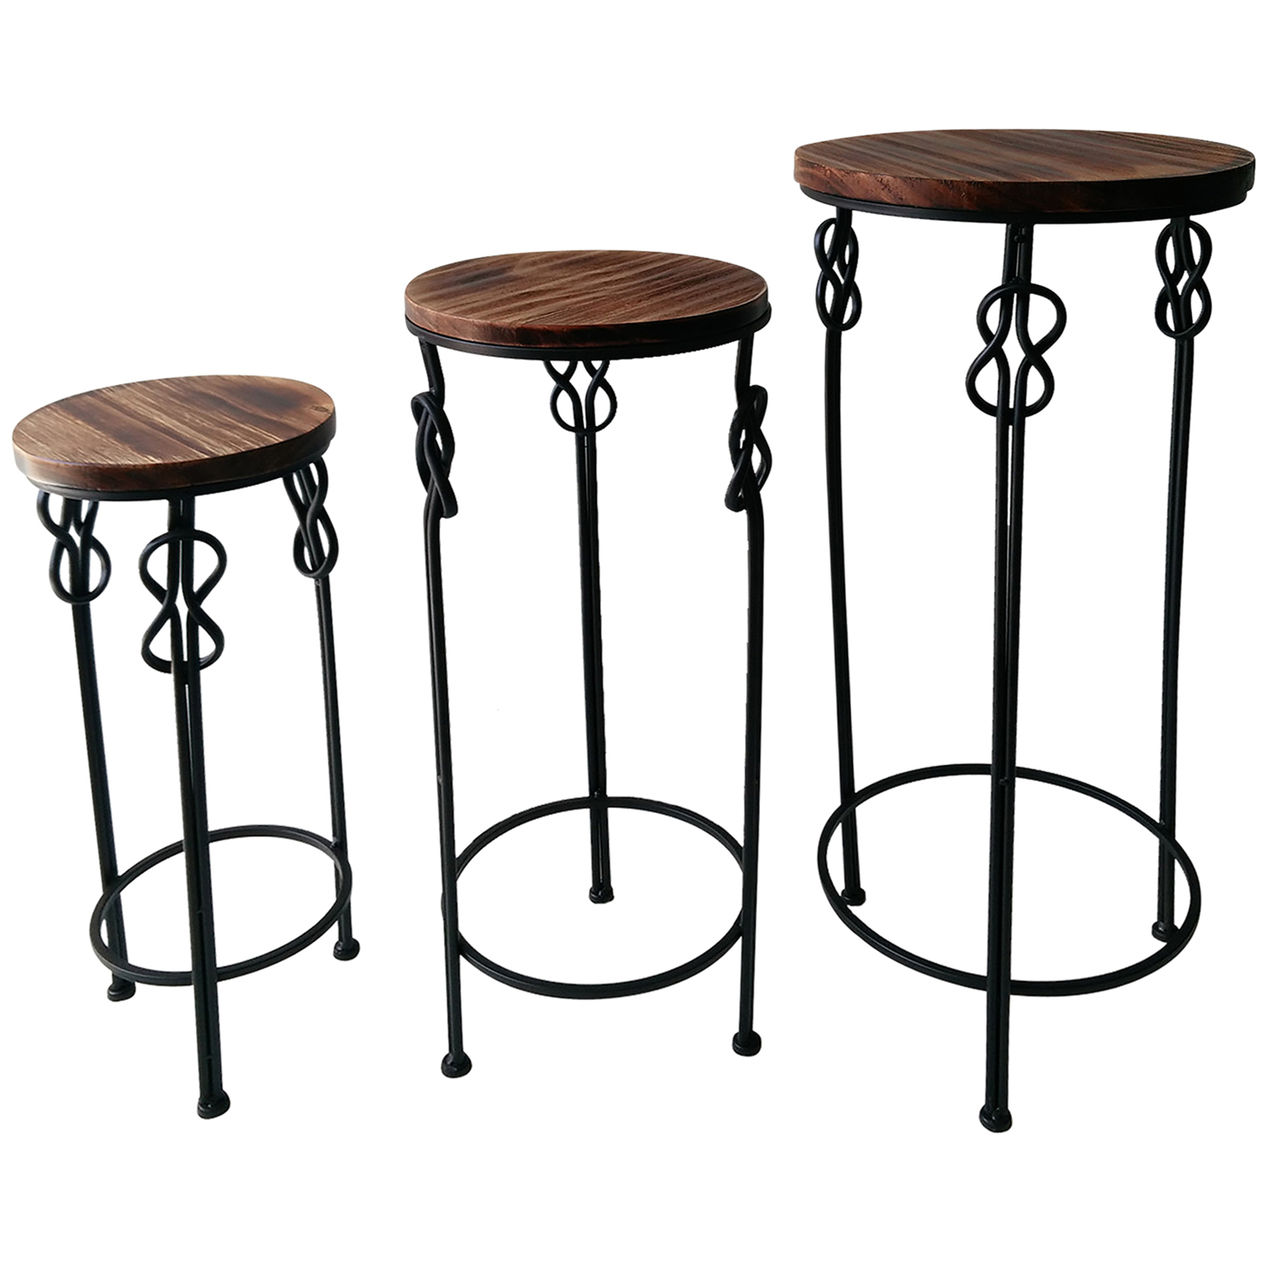 large round wood steel knot accent table home metal amp narrow console with shelves toolbox chest cabinets upholstered dining room chairs white sets drum kit seat comfortable